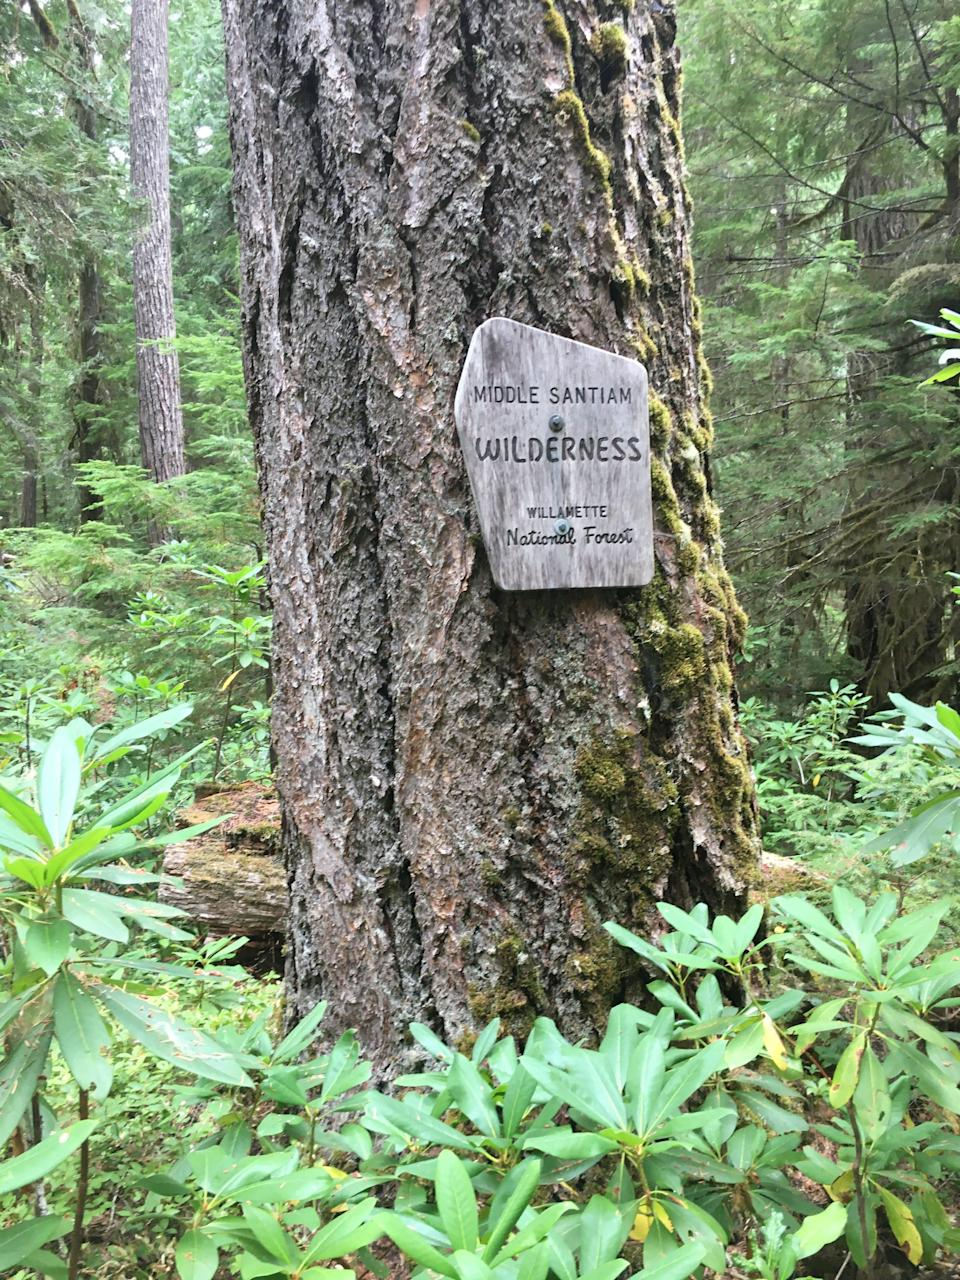 Part of the Old Cascades backpacking loop travels through part of the Middle Santiam Wilderness.